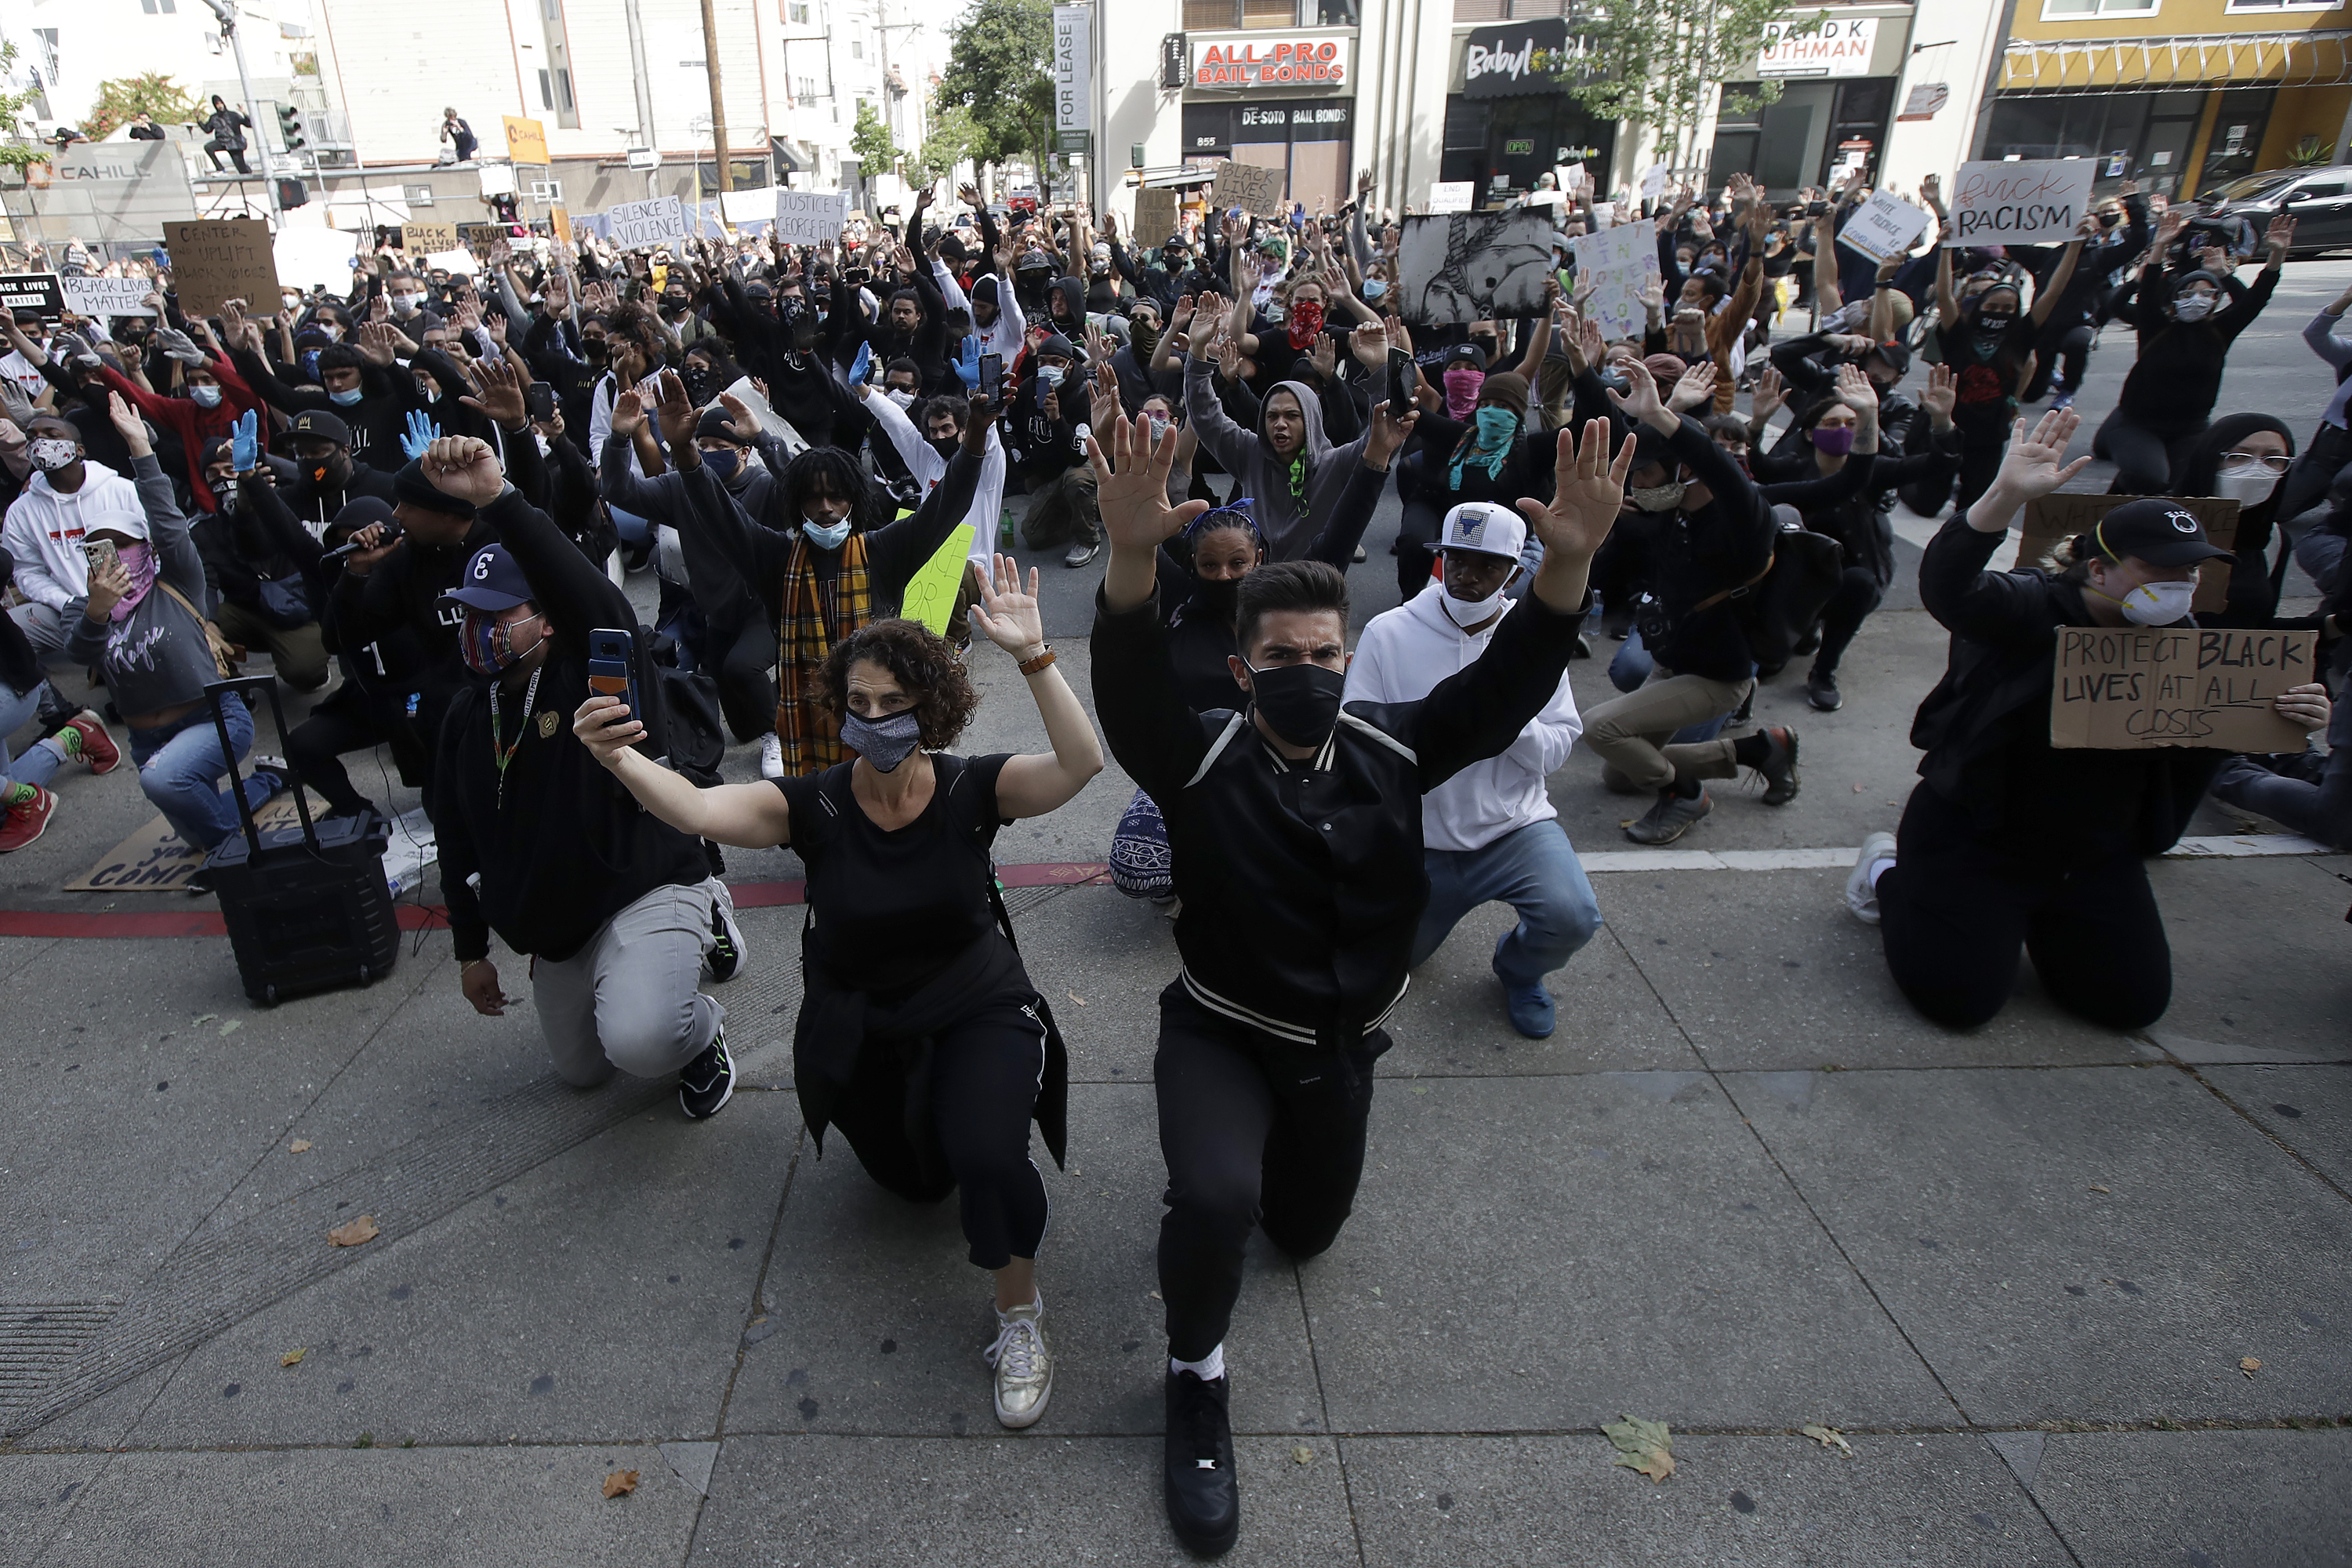 People kneel in front of the Hall of Justice in San Francisco, Sunday, May 31, 2020, at protests over the Memorial Day death of George Floyd. Floyd was a black man who was killed in police custody in Minneapolis on May 25. (AP Photo/Jeff Chiu)